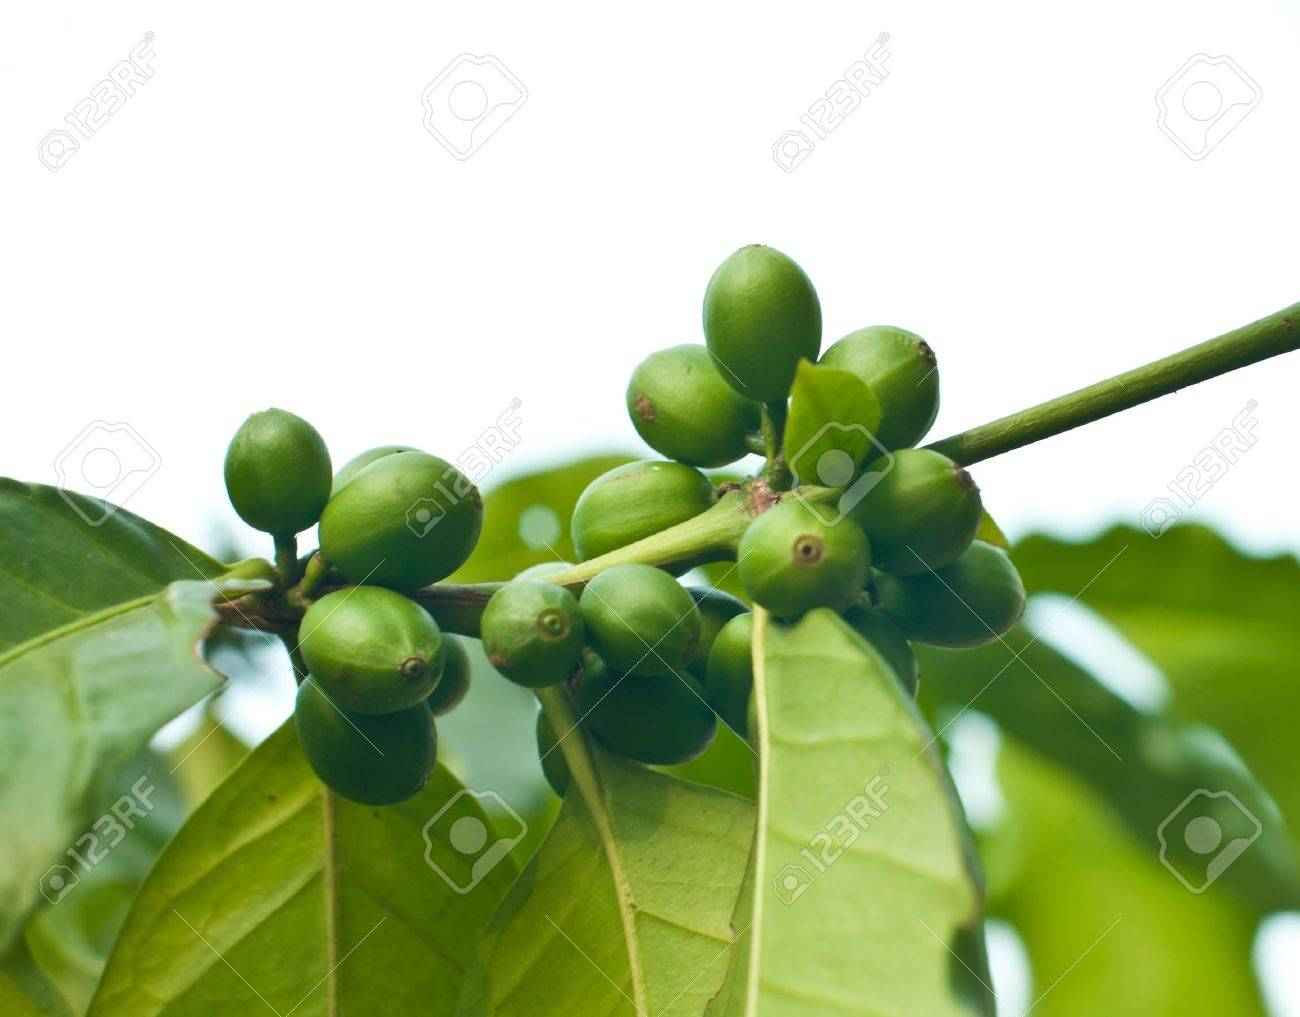 Unripe coffee beans on coffee tree. Stock Photo - 13278548